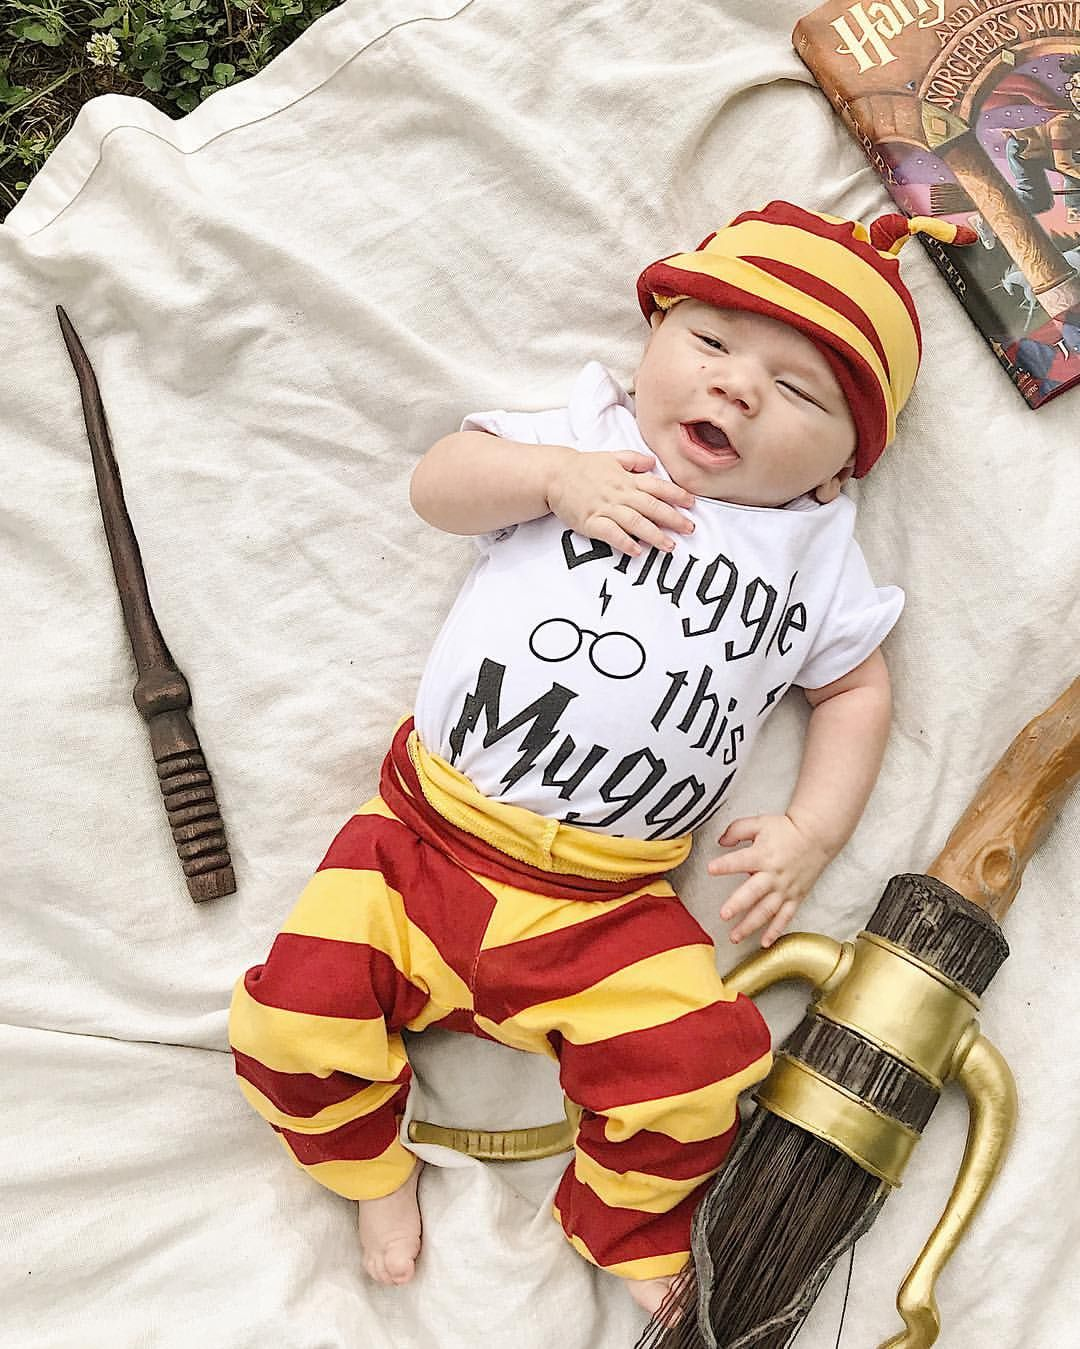 Harry potter baby photoshoot monthly baby photos harry potter photoshoot harry potter photoshoot ideas